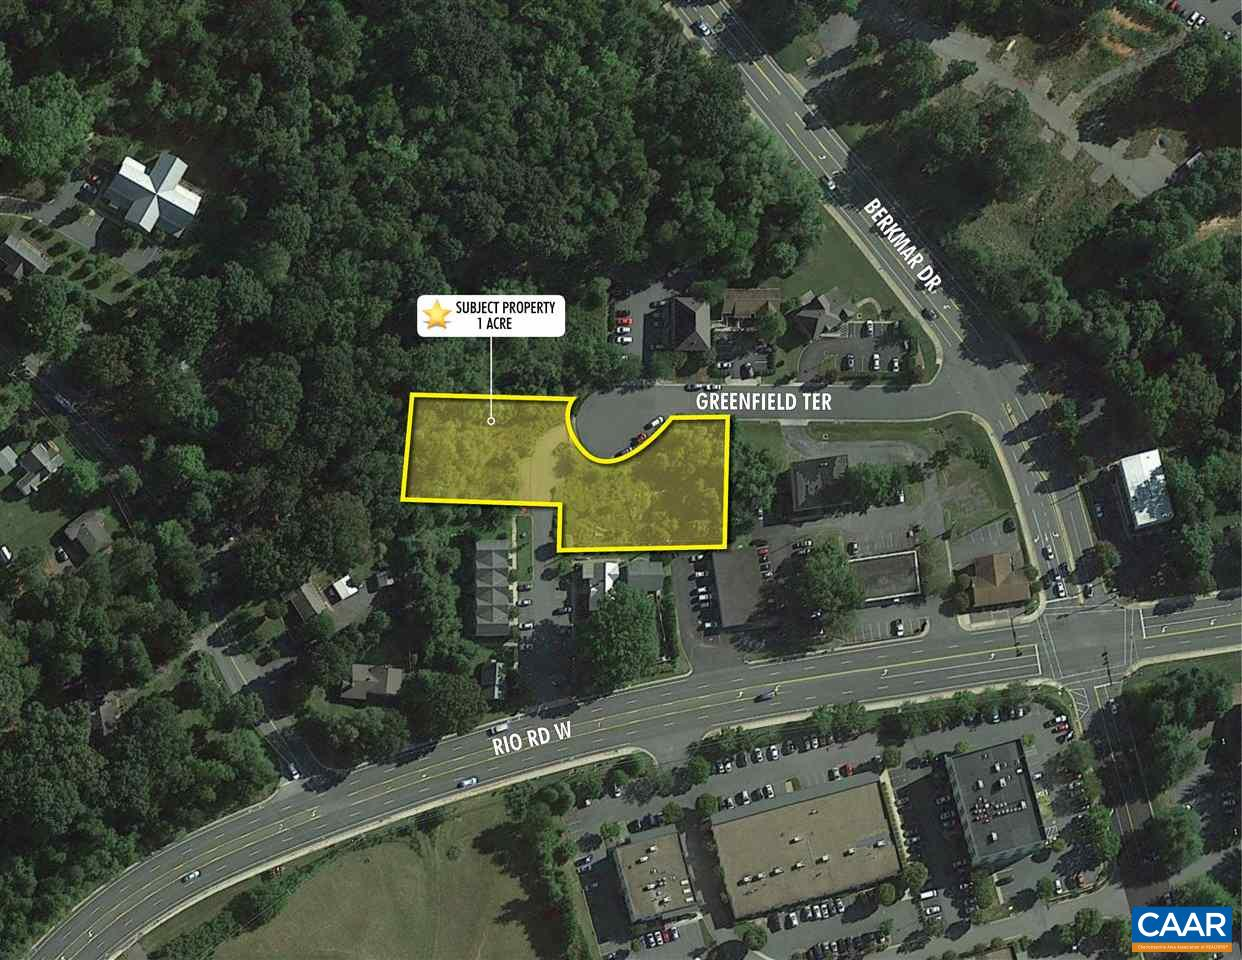 land for sale , MLS #558911, L 10 Greenfield Ter